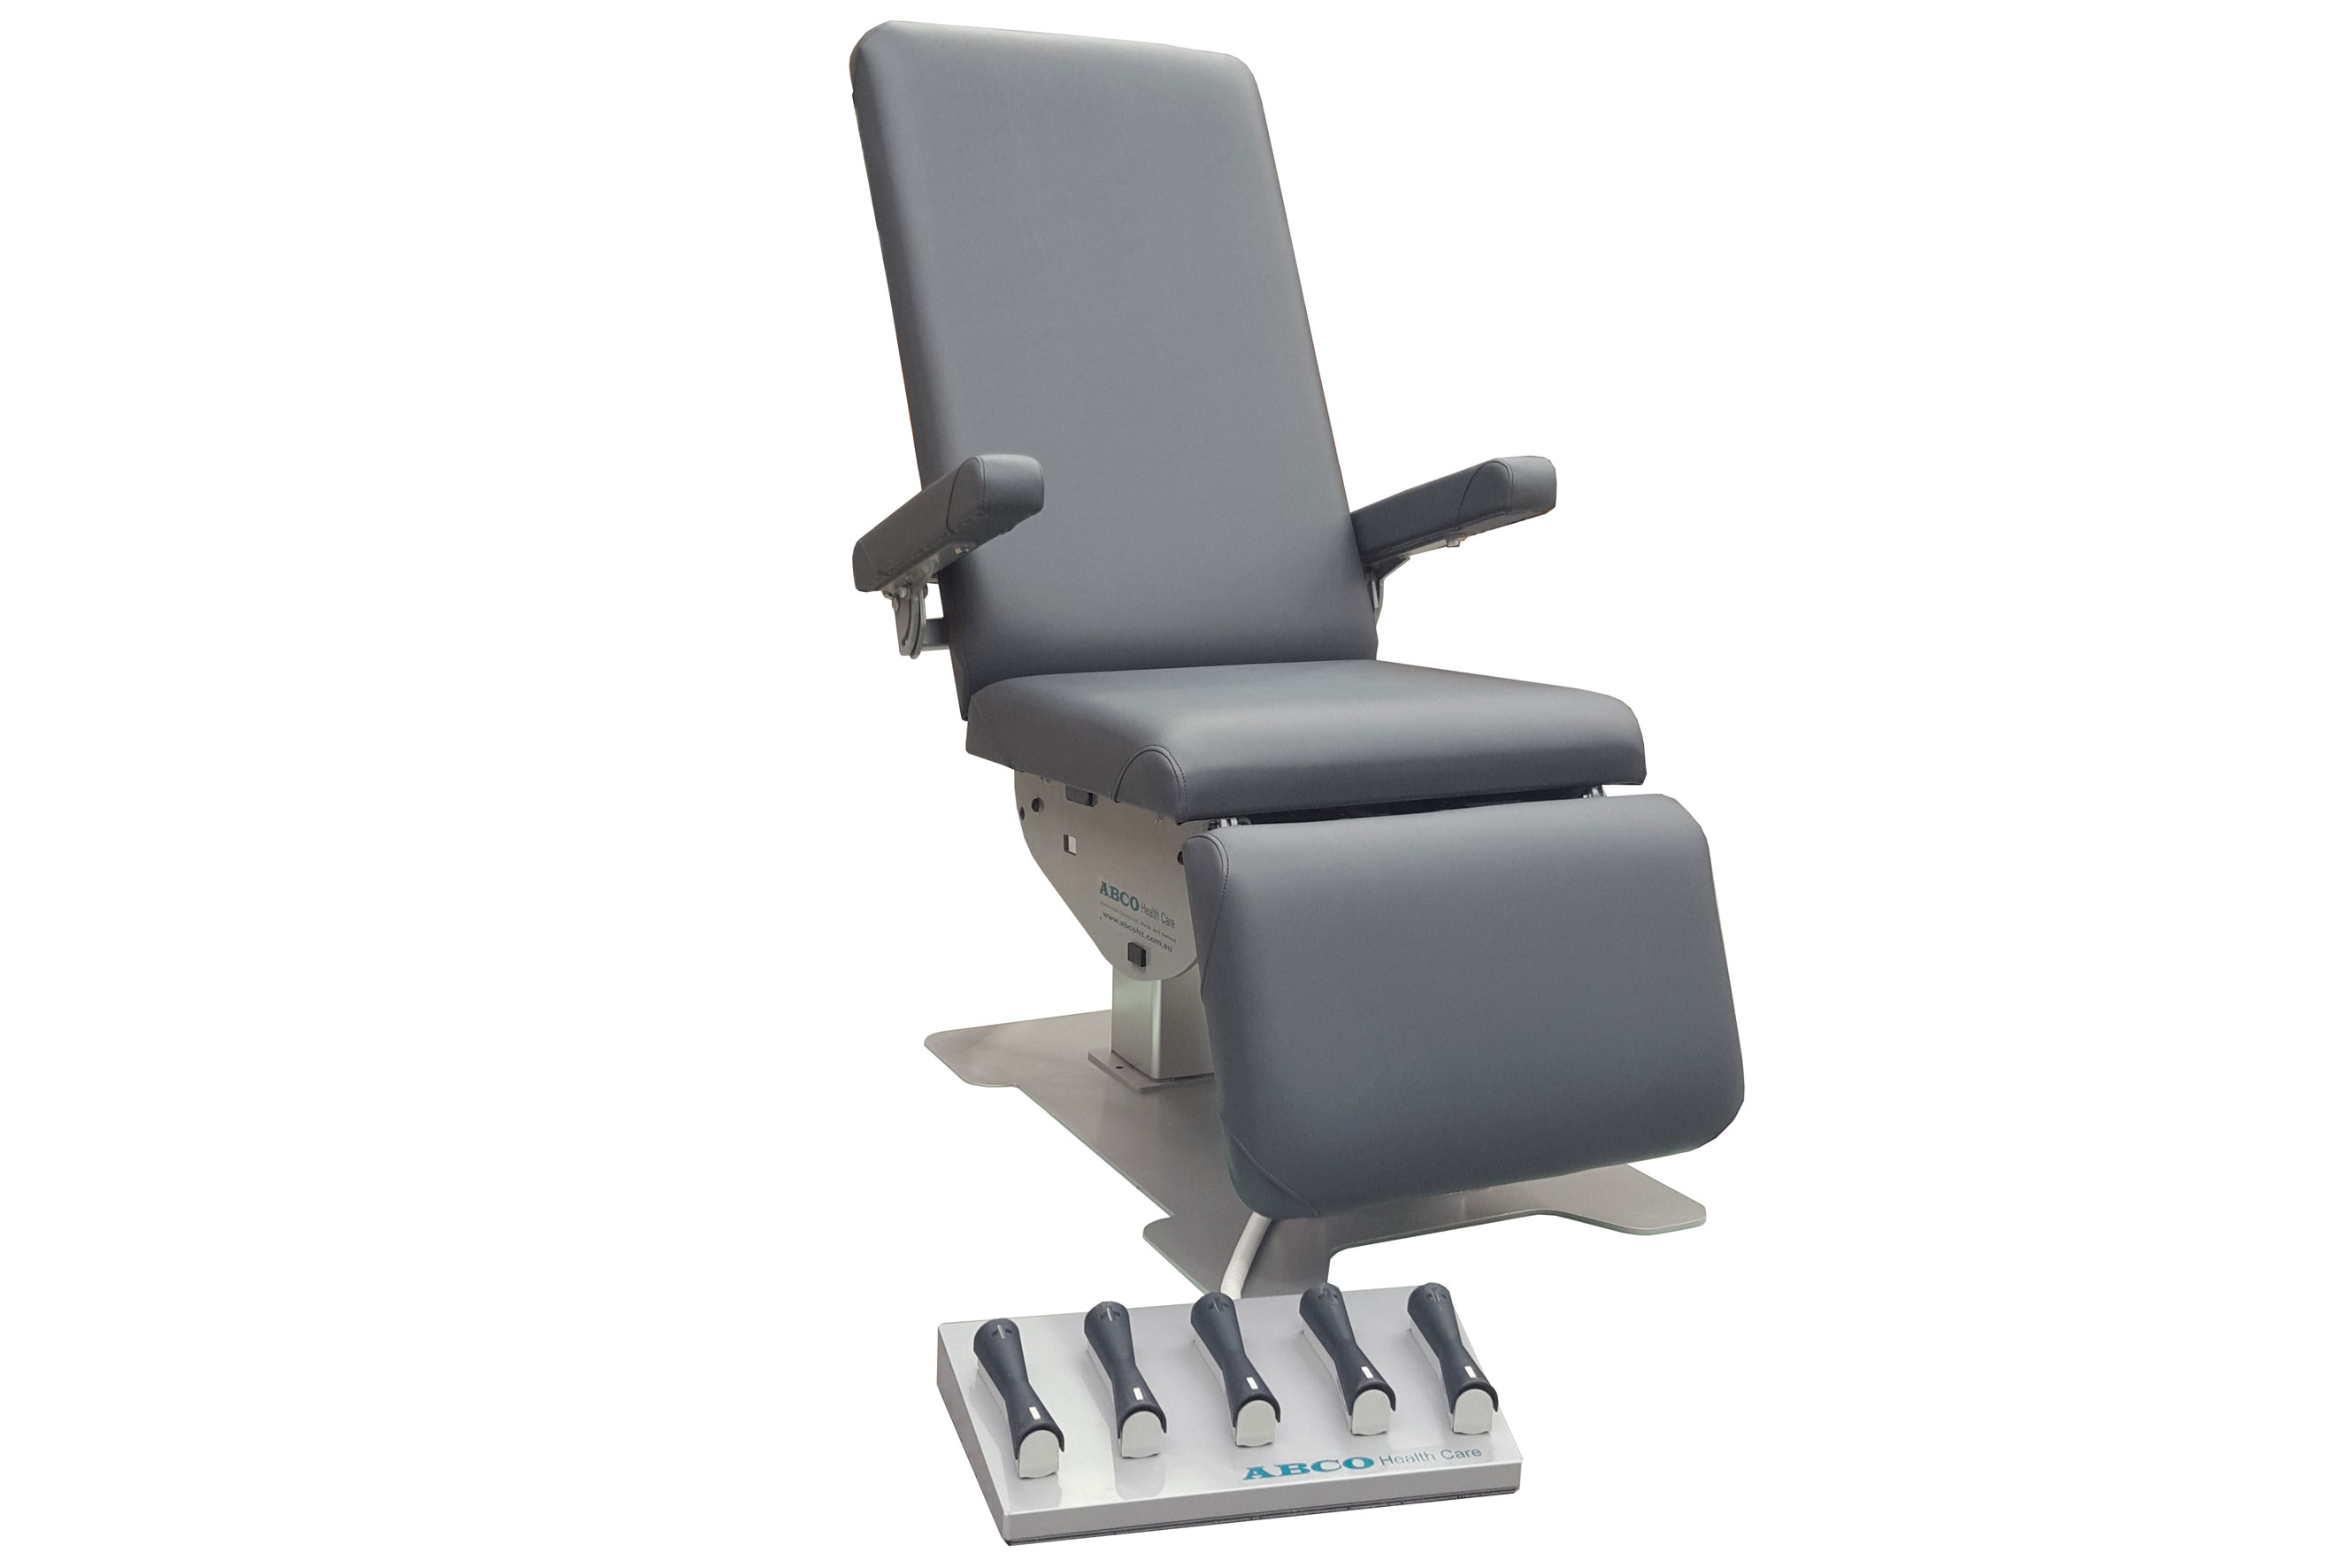 ... ABCO P35 Podiatry Chair. Download PDF Brochure  sc 1 st  ABCO Health Care & ABCO Health Care P35Podiatry Chair